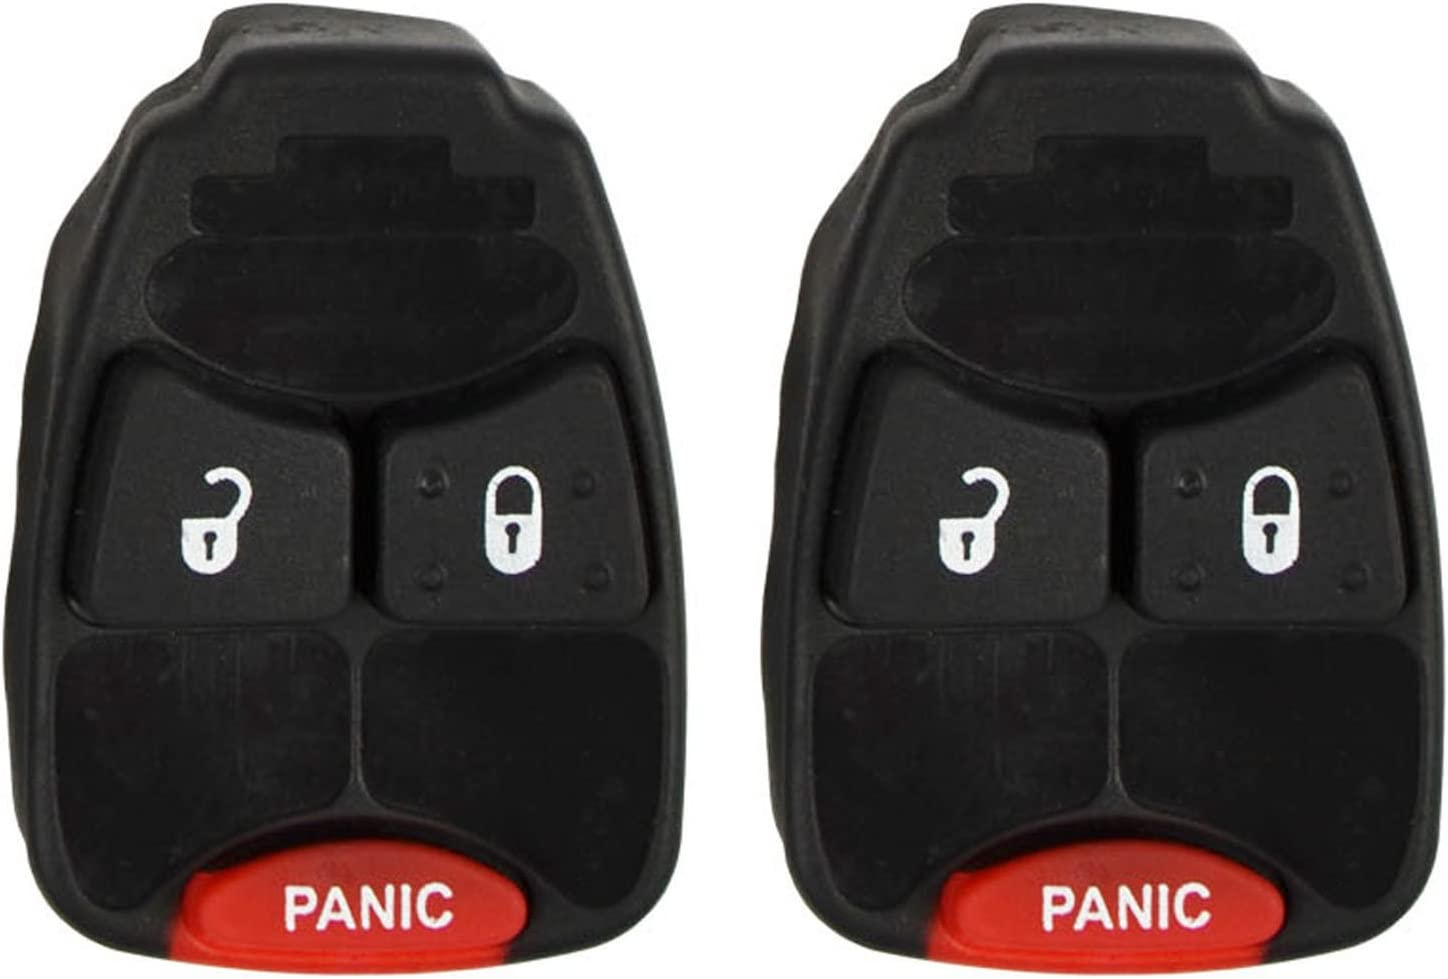 qualitykeylessplus Two Replacement 3 Button Rubber Pads for Chrysler Remotes Keyless Entry with Free KEYTAG